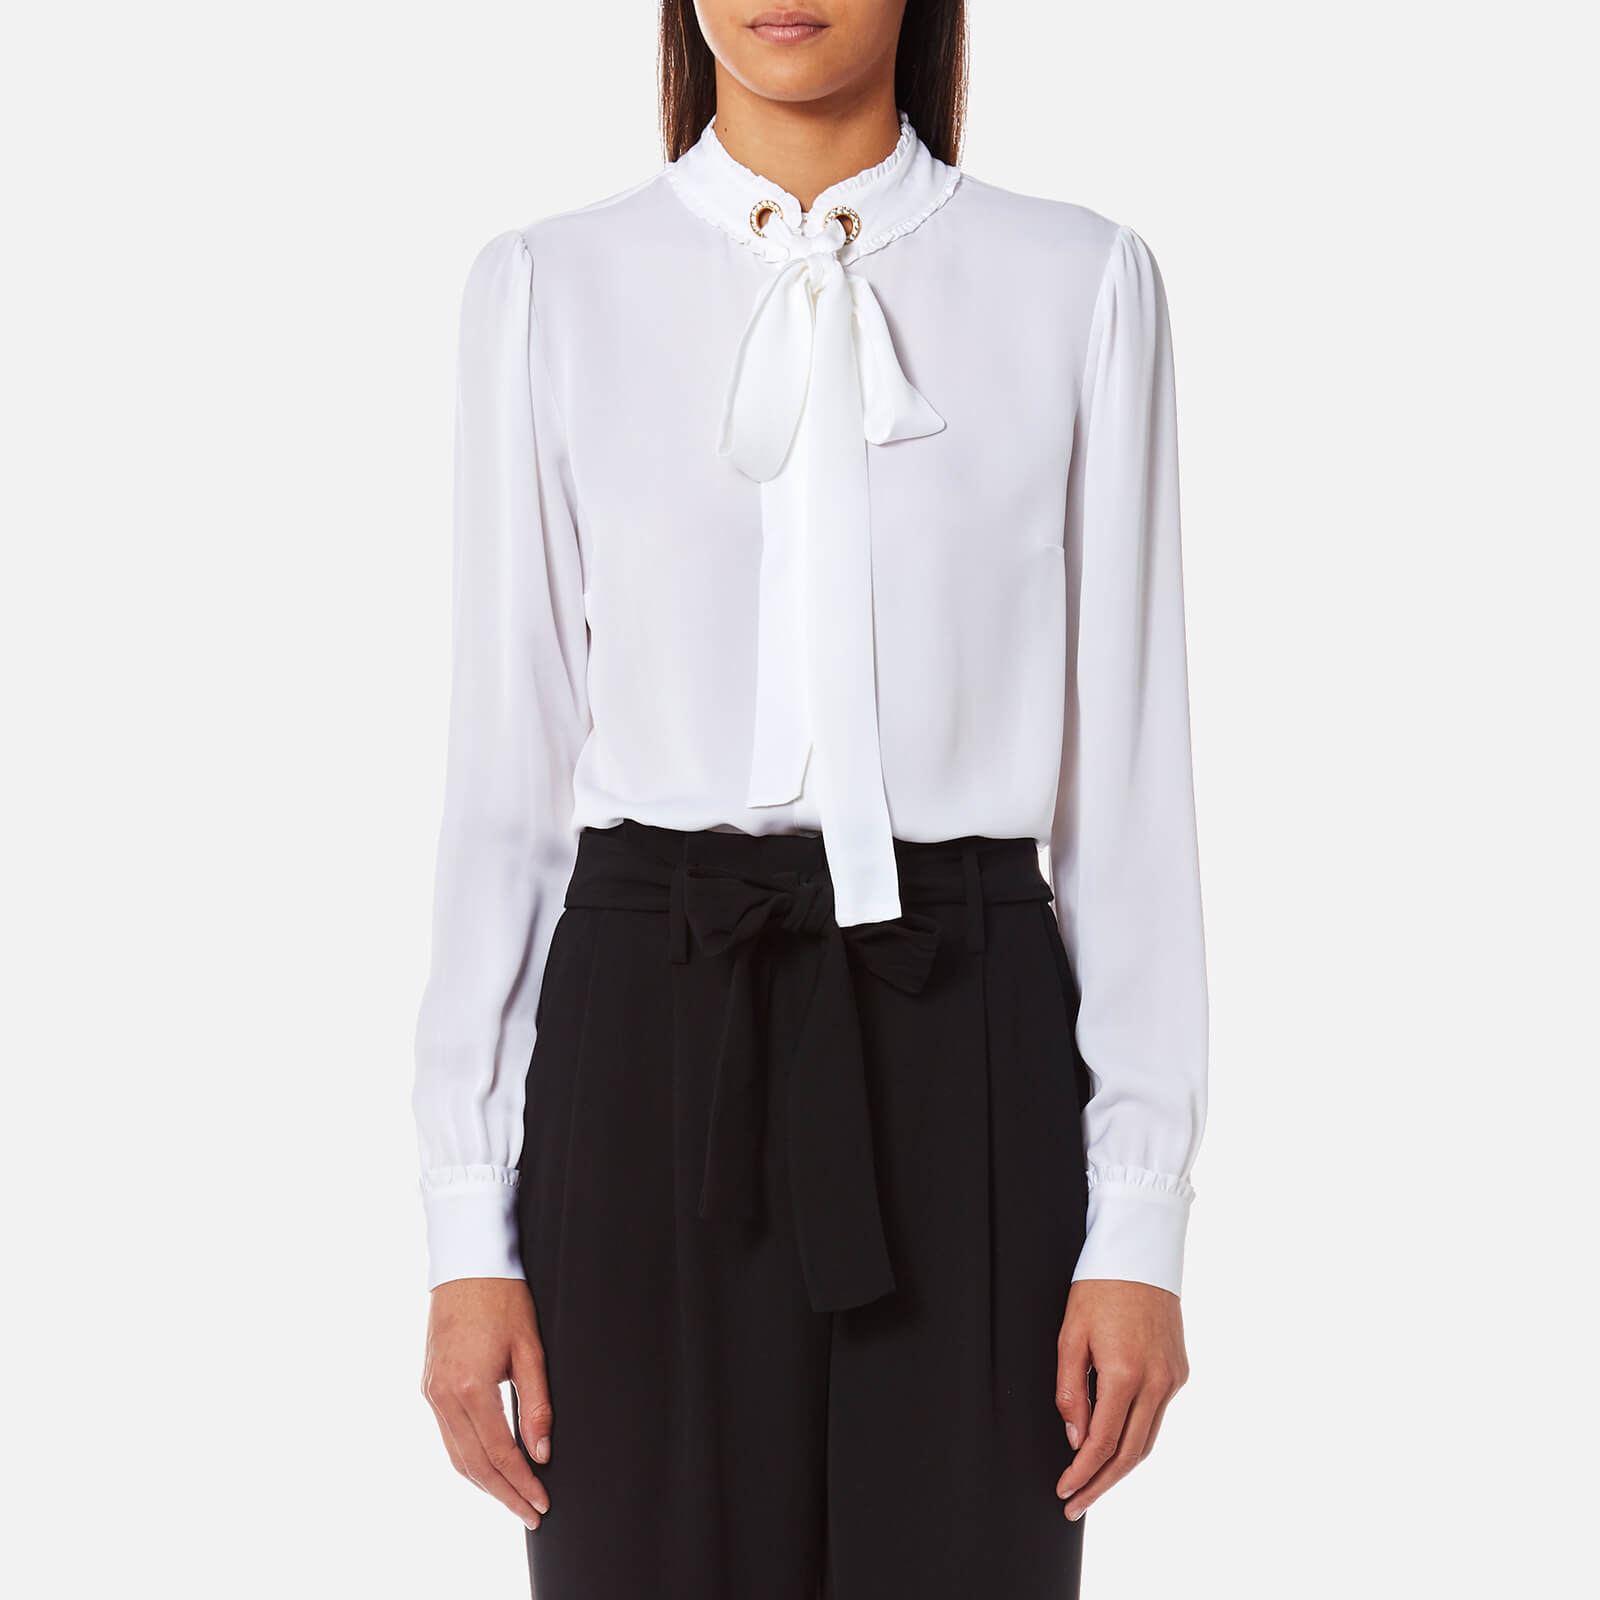 f0951d683ff95 MICHAEL MICHAEL KORS Women s Grommet Neck Tie Blouse - White - Free UK  Delivery over £50